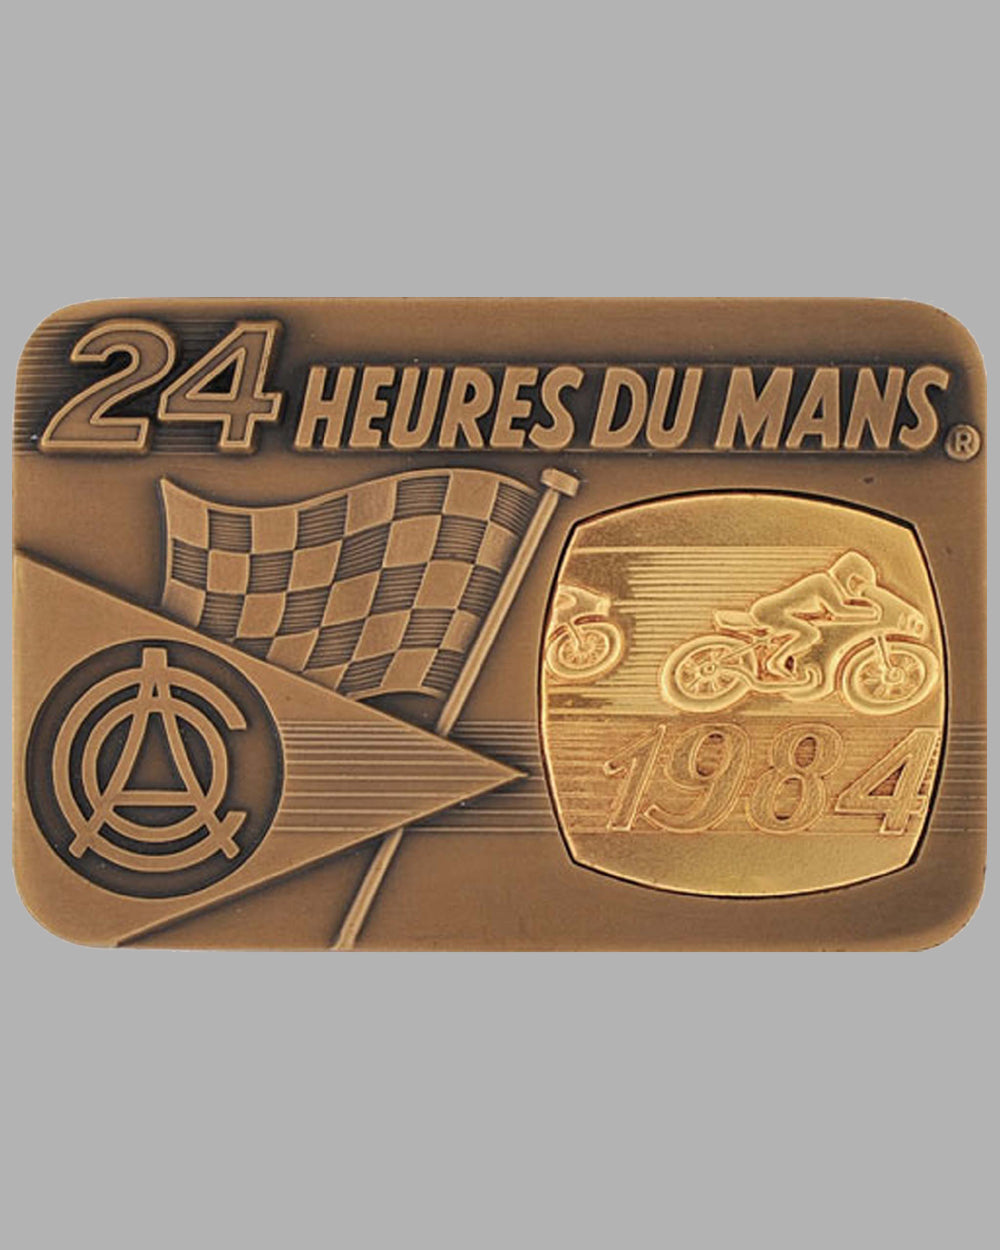 1984 - 24 Heures du Mans for motorcycle participant's medallion, France